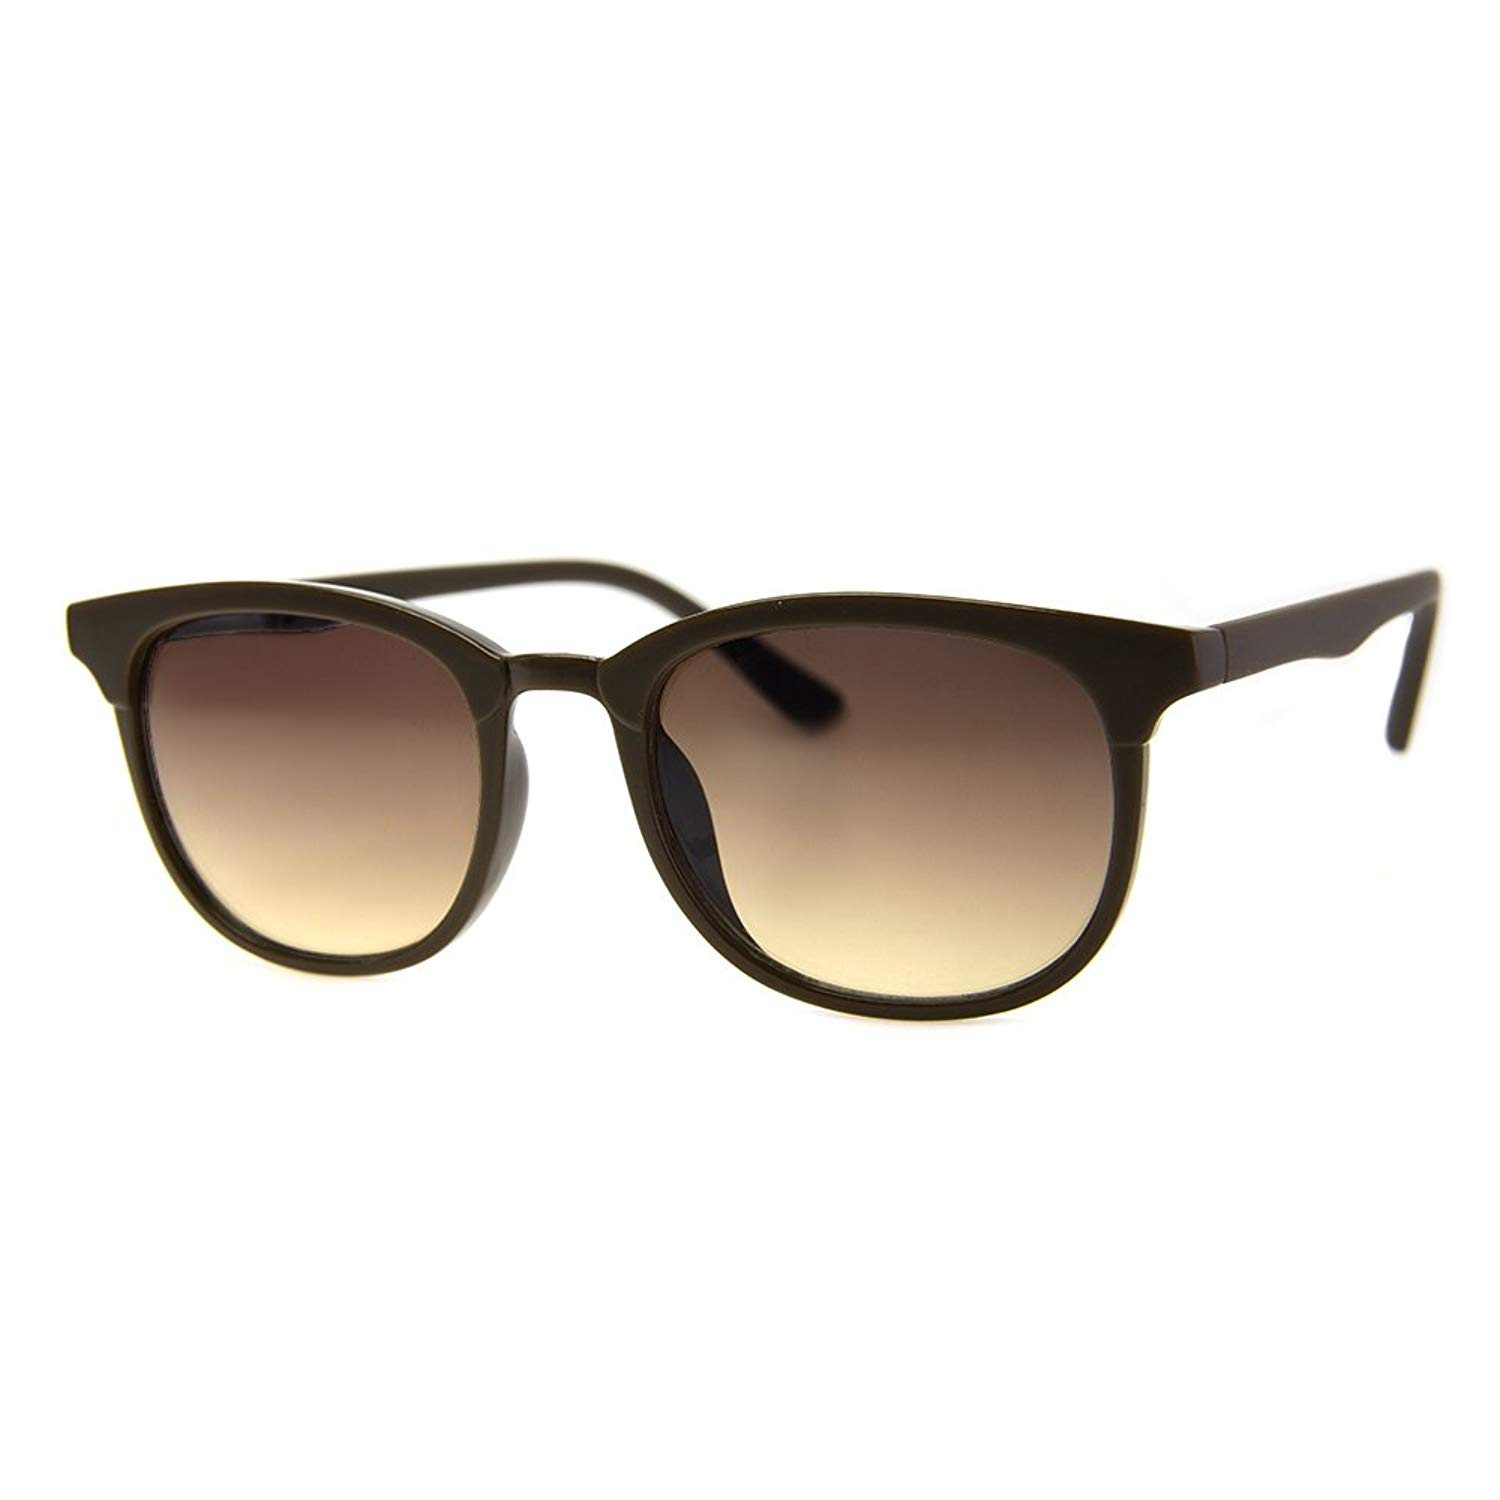 ab0fb092a79 Get Quotations · A.J. Morgan Sunglasses Diplomat Square Sunglasses